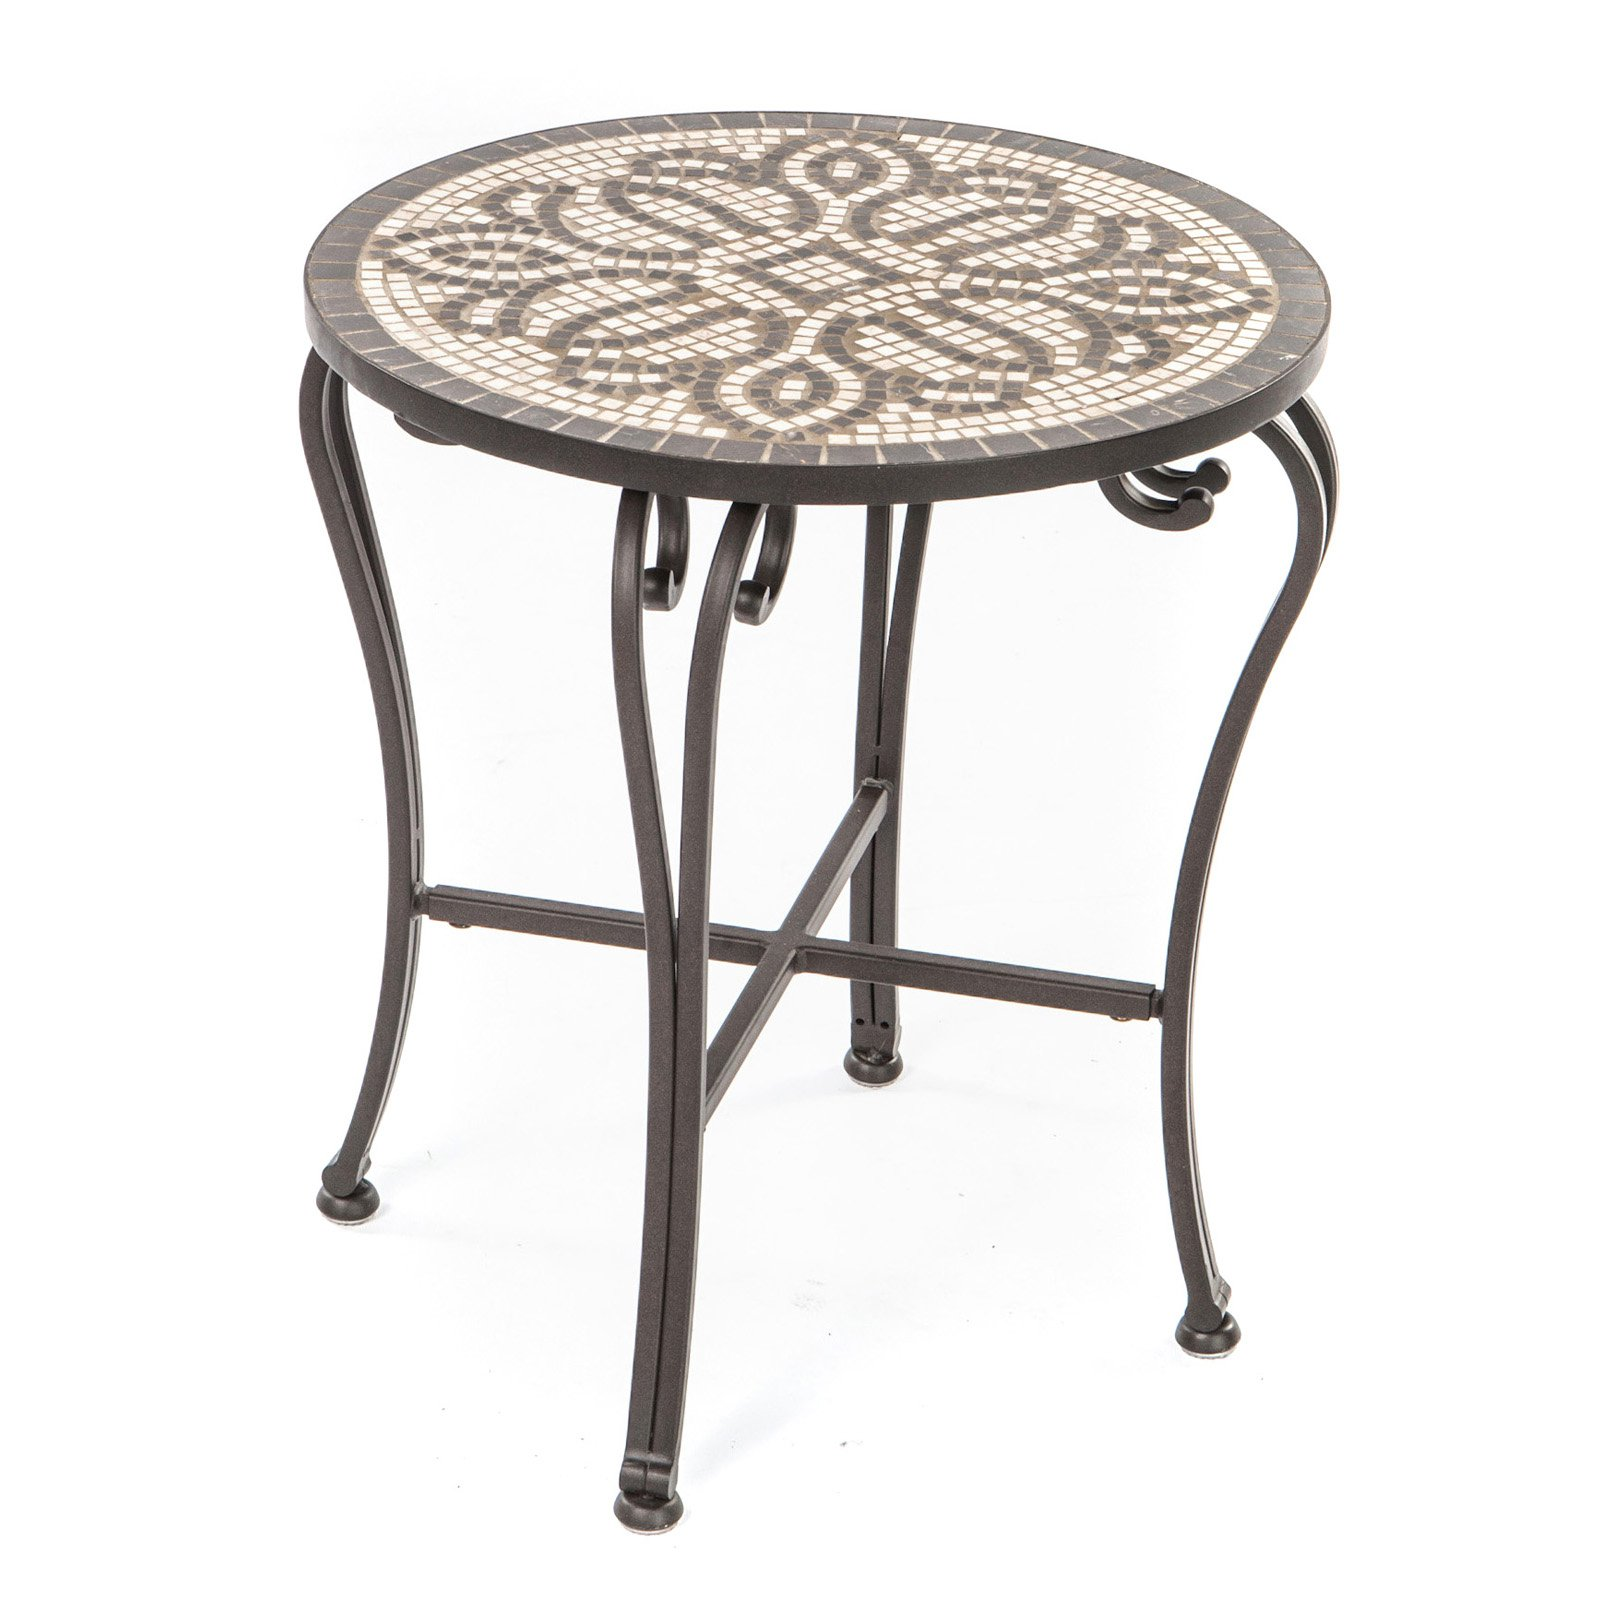 impressive patio accent table metal side attractive bluestone ideas outdoor designs residence remodel square card tablecloth white round tray grey rattan carpet door threshold